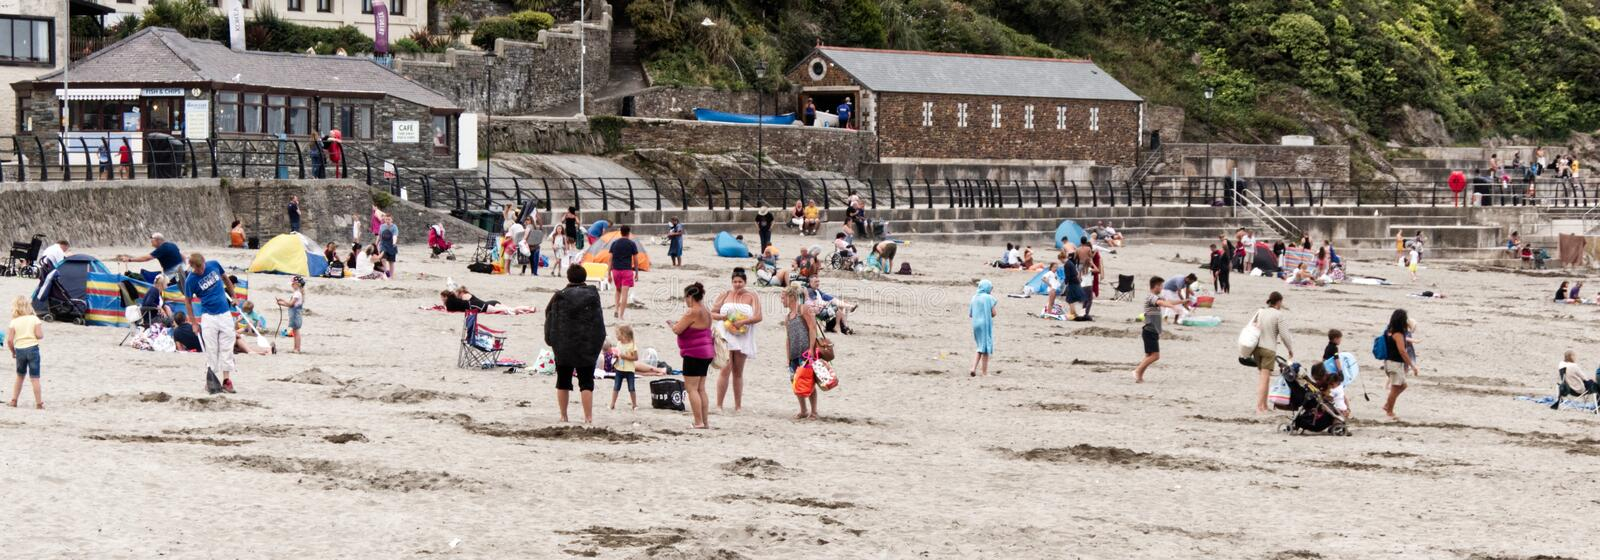 Packing up from a bank holiday at the beach. End of the bank holiday in the UK, people slowly packing up and leaving the beach at Looe, Cornwall, after the sun royalty free stock photos